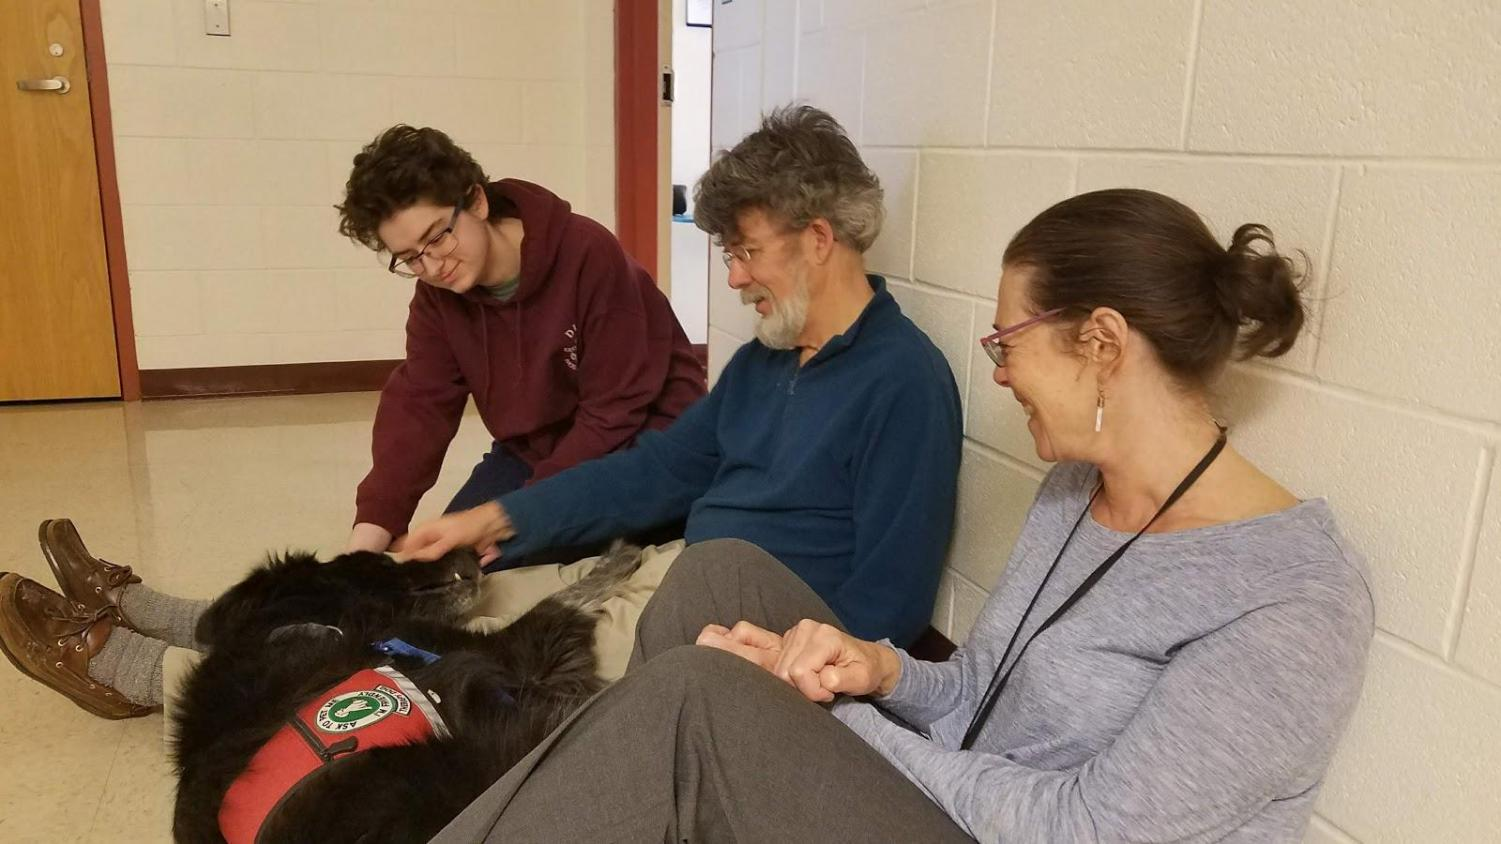 Senior Carlyn Schwingbeck, Ed Harrow of Pets and People, and special education teacher Beth Mintz play with Tucker the therapy dog. Mintz and Scwingbeck have worked with the Pets and People organization to bring therapy dogs into Algonquin to provide relief for students.